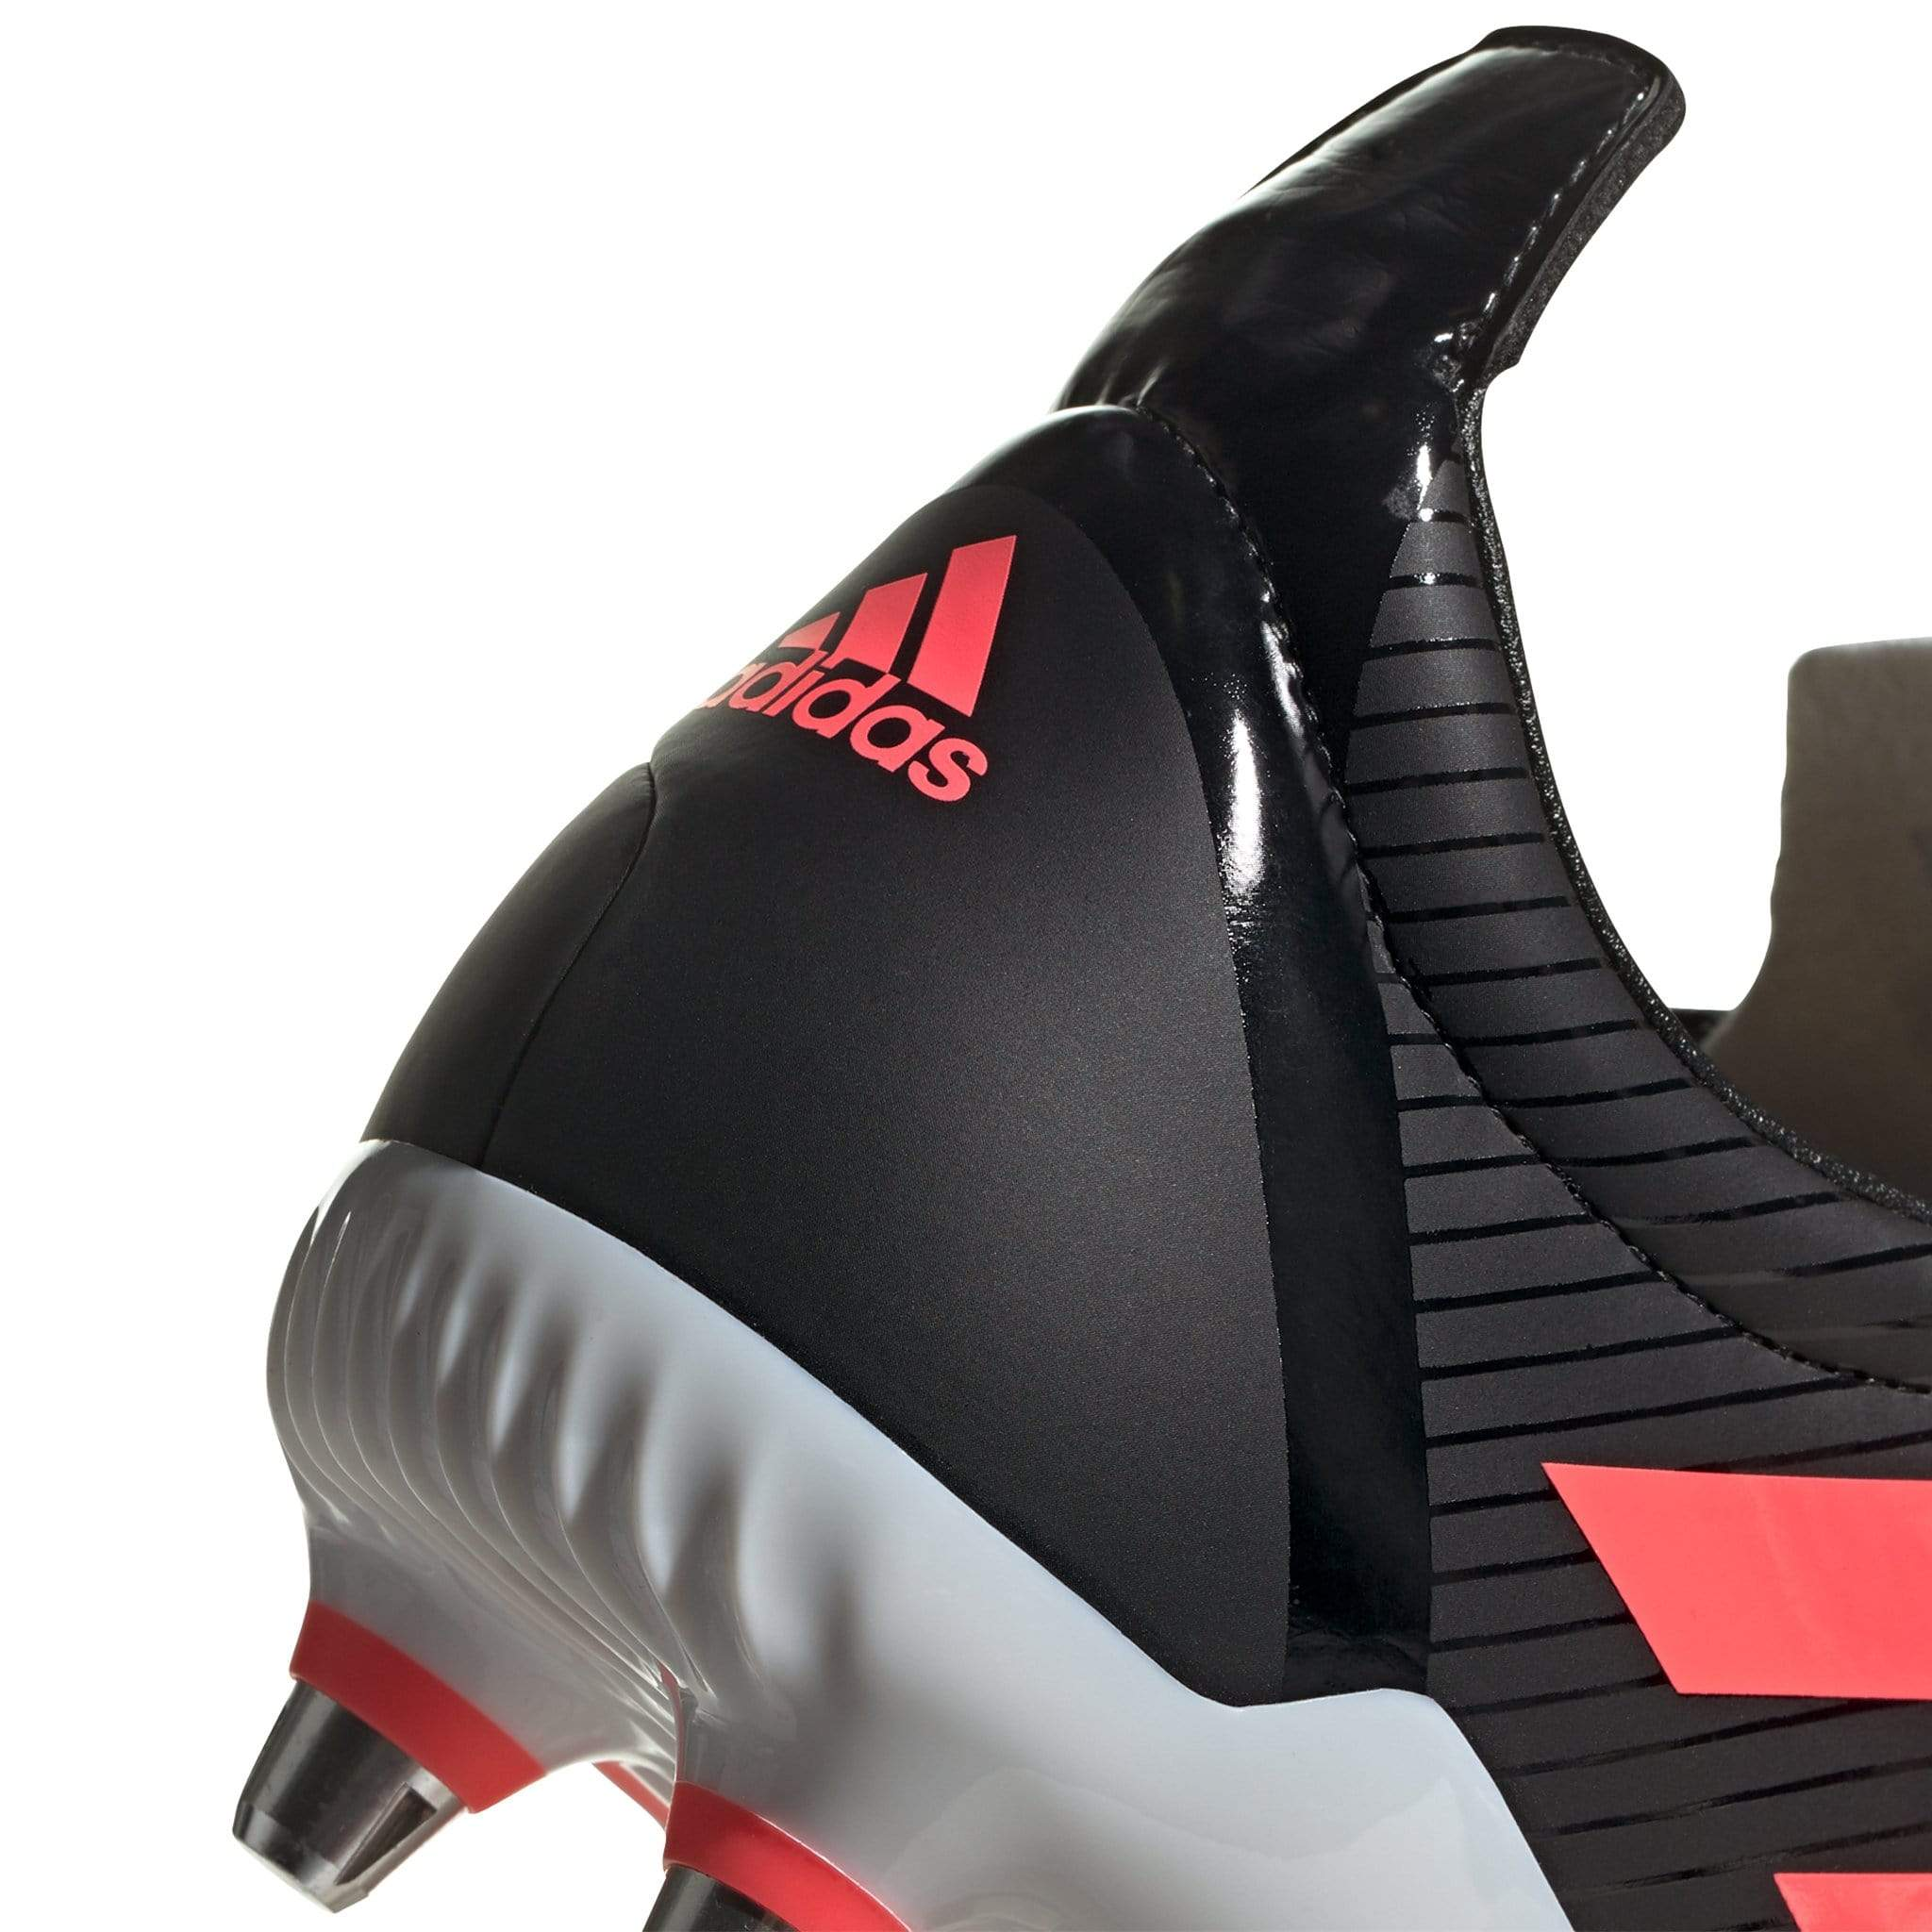 Close Up of Back of Black Rugby Boot with Pink Adidas Logo